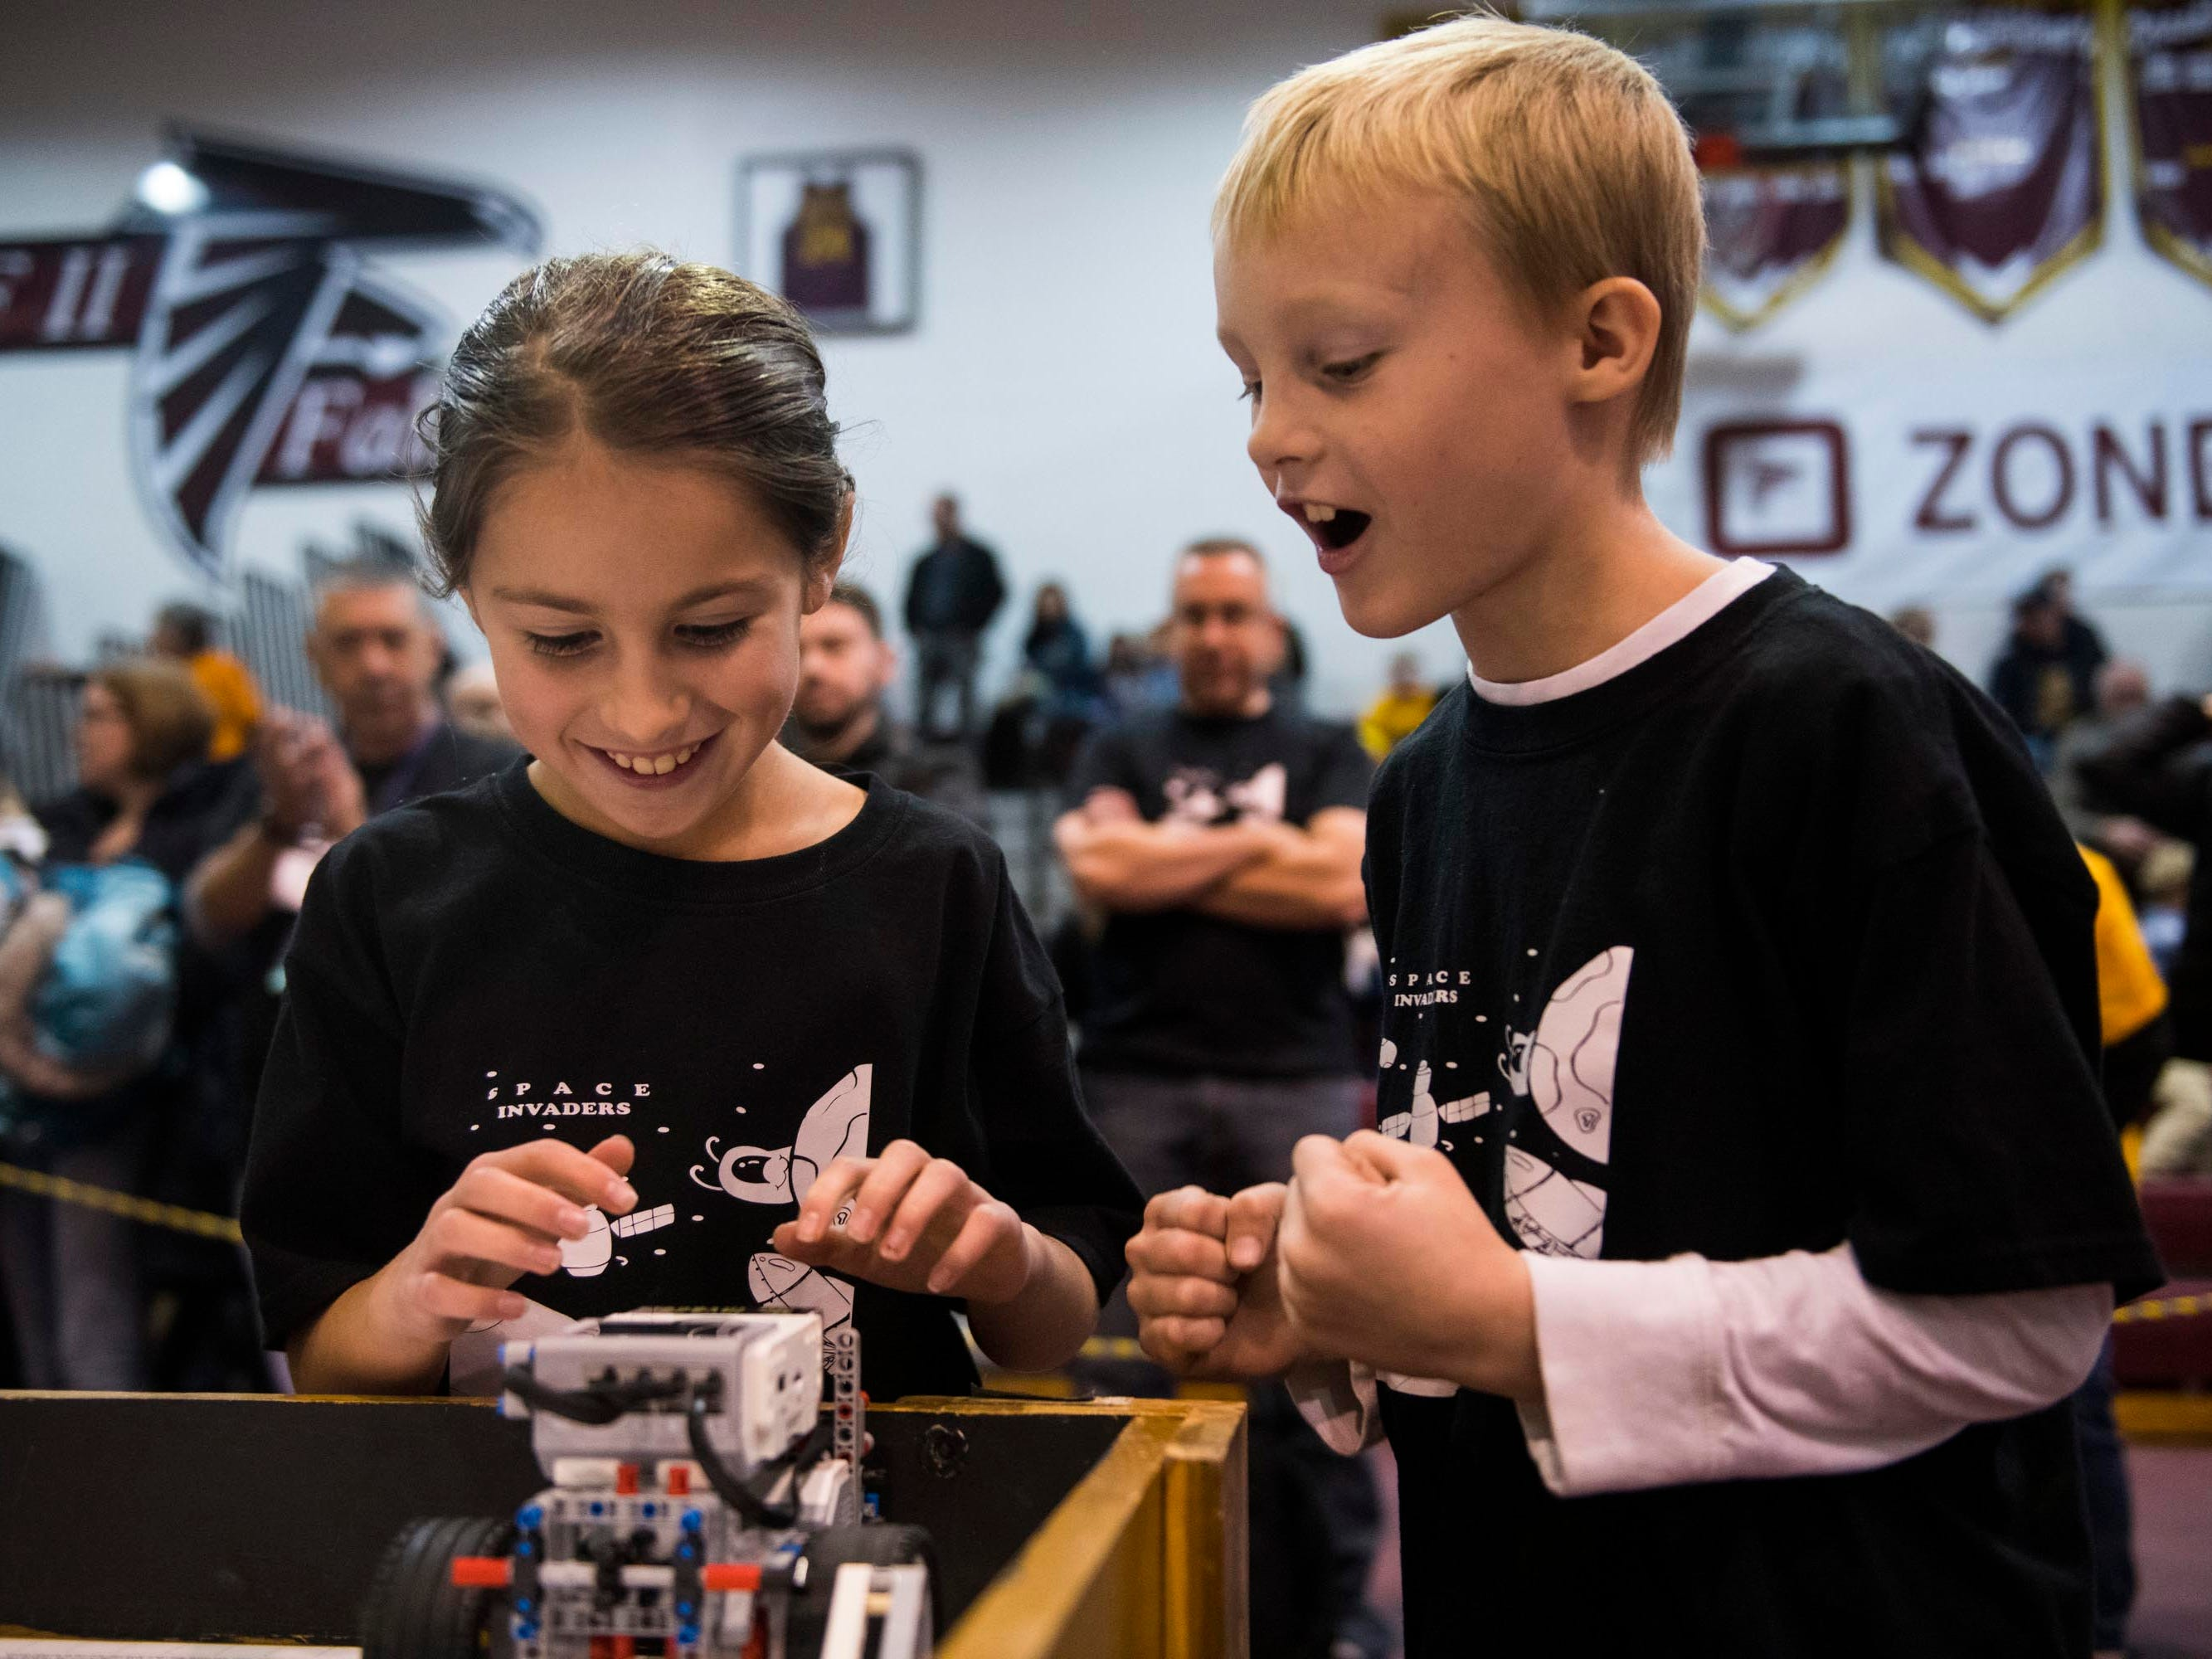 Paige Brinkey, 9, and Leo Klinger, 9, of Shelby Township, members of the Space Invaders robotics team, get ready to send off their robot for competition at the annual UCS ThunderQuest, a regional tournament for FIRST LEGO robotics teams, at Henry Ford II High School in Sterling Heights on Saturday.